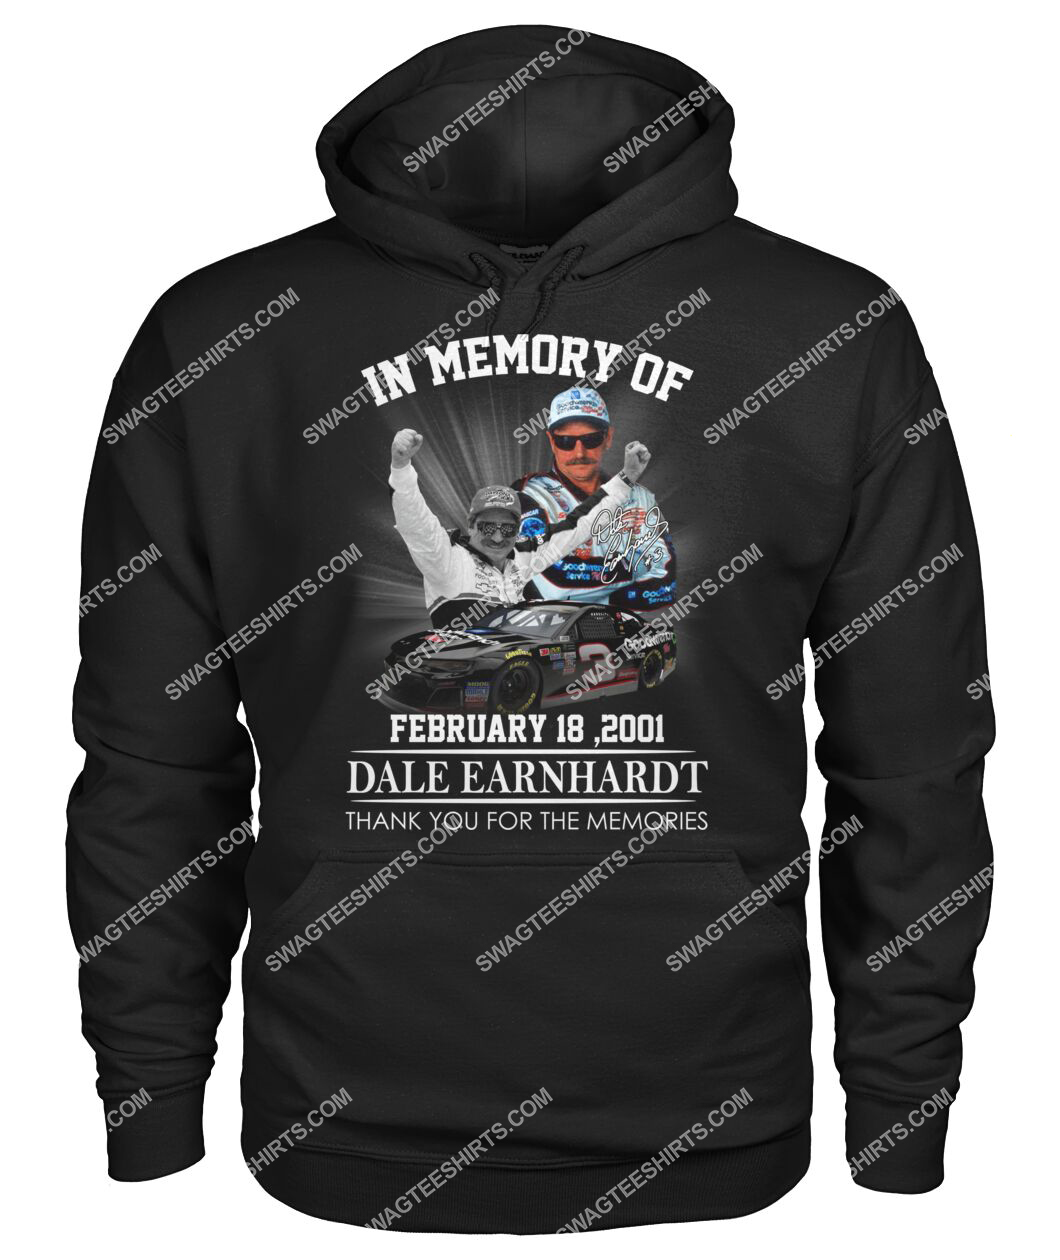 in memory of dale earnhardt thank you for memories hoodie 1